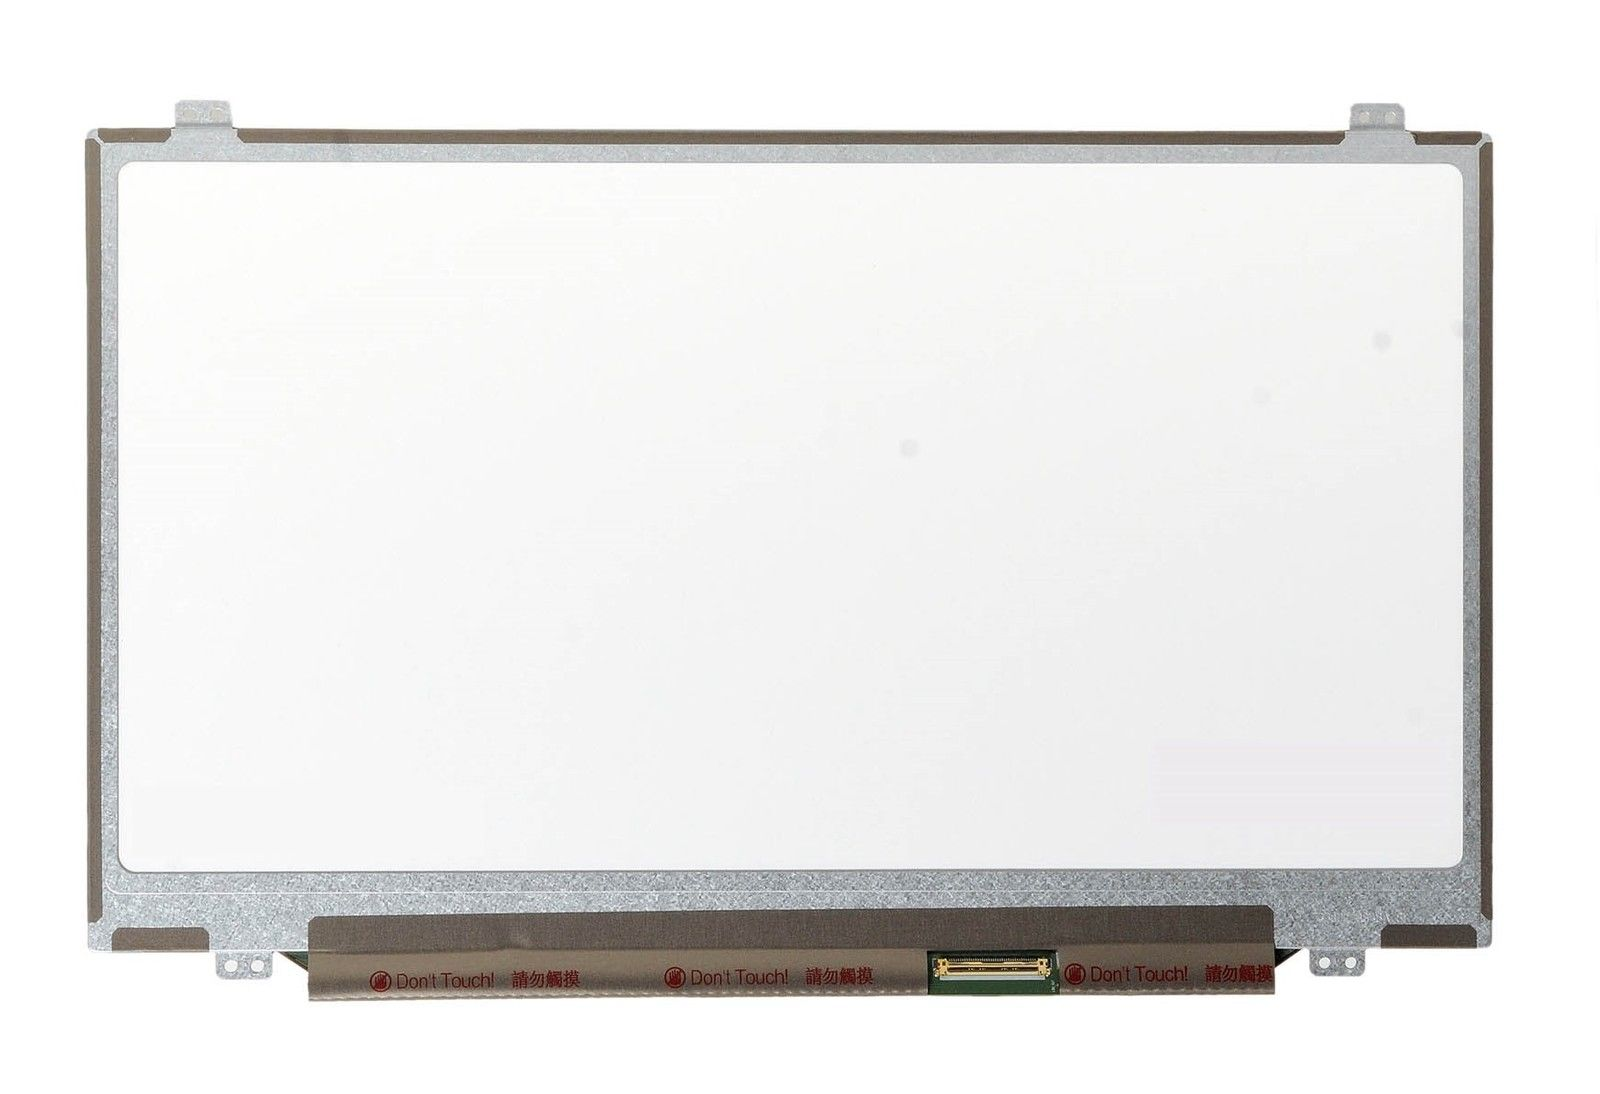 Hp Envy 4/4-1110-US, 4-1015DX Yeni 14.0 Slim Laptop LED LCD Ekran ve HD WXGA 1366x768 Çözünürlük